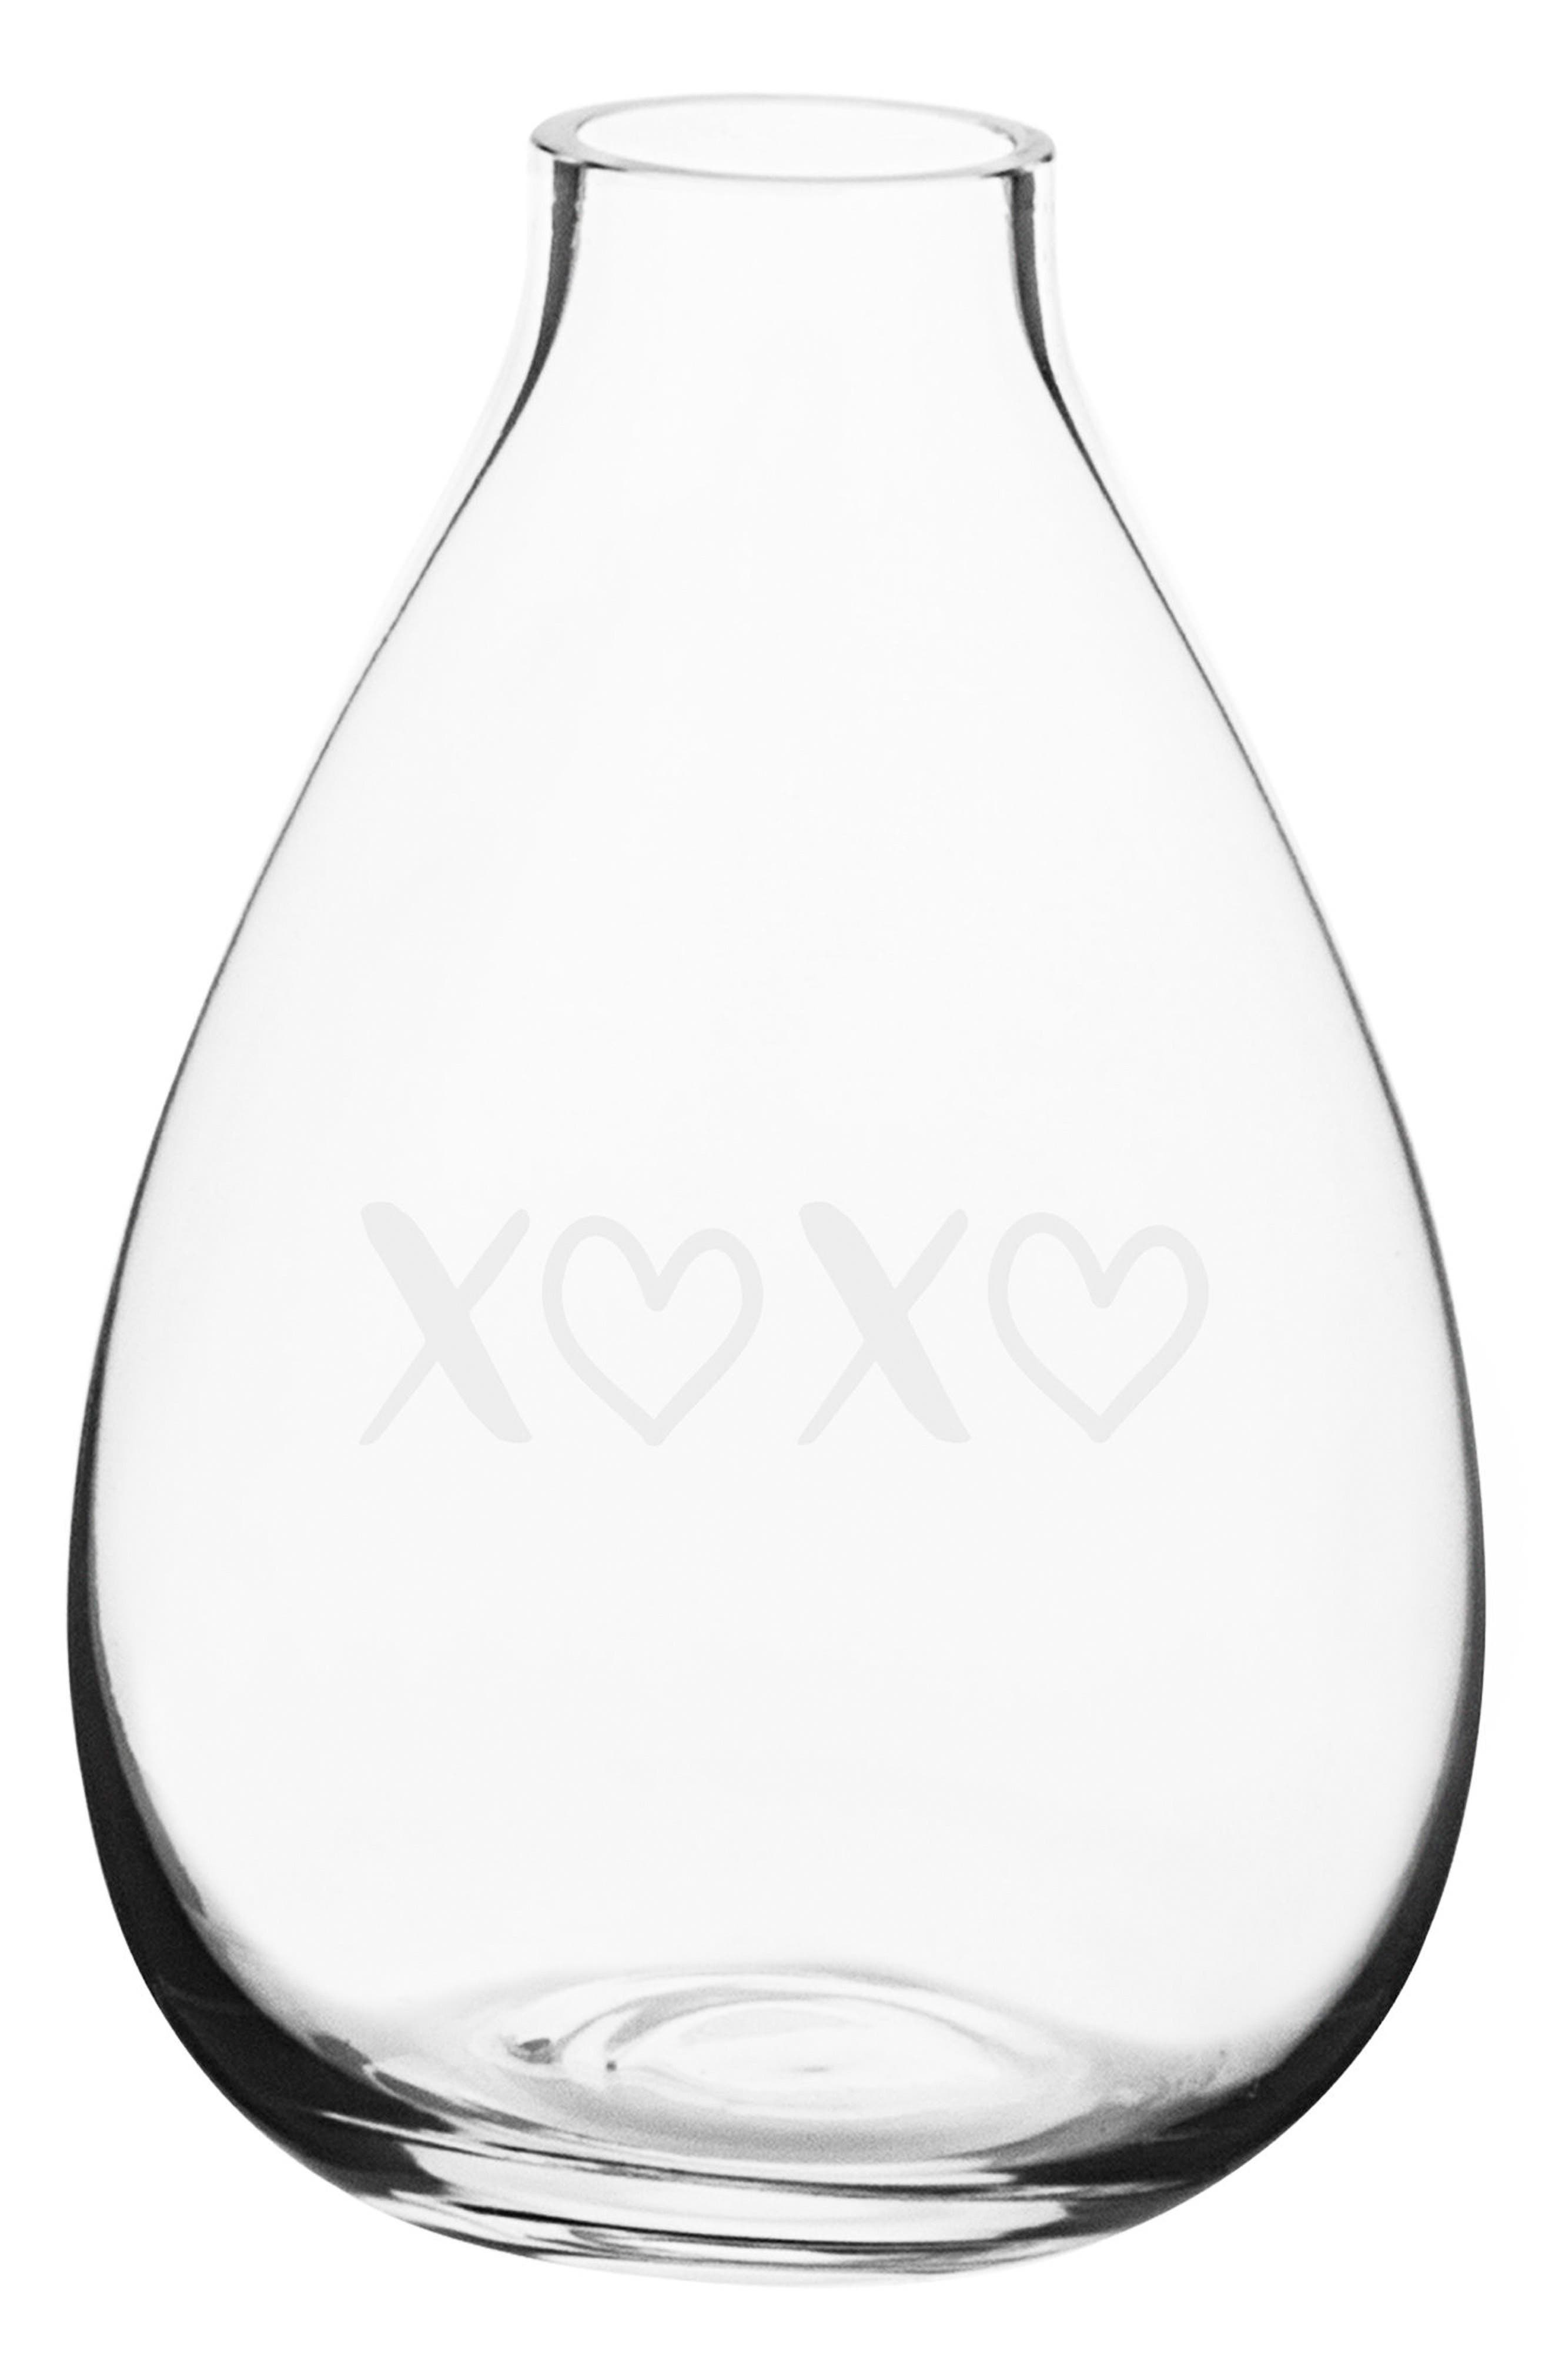 XOXO Glass Vase,                         Main,                         color, Clear